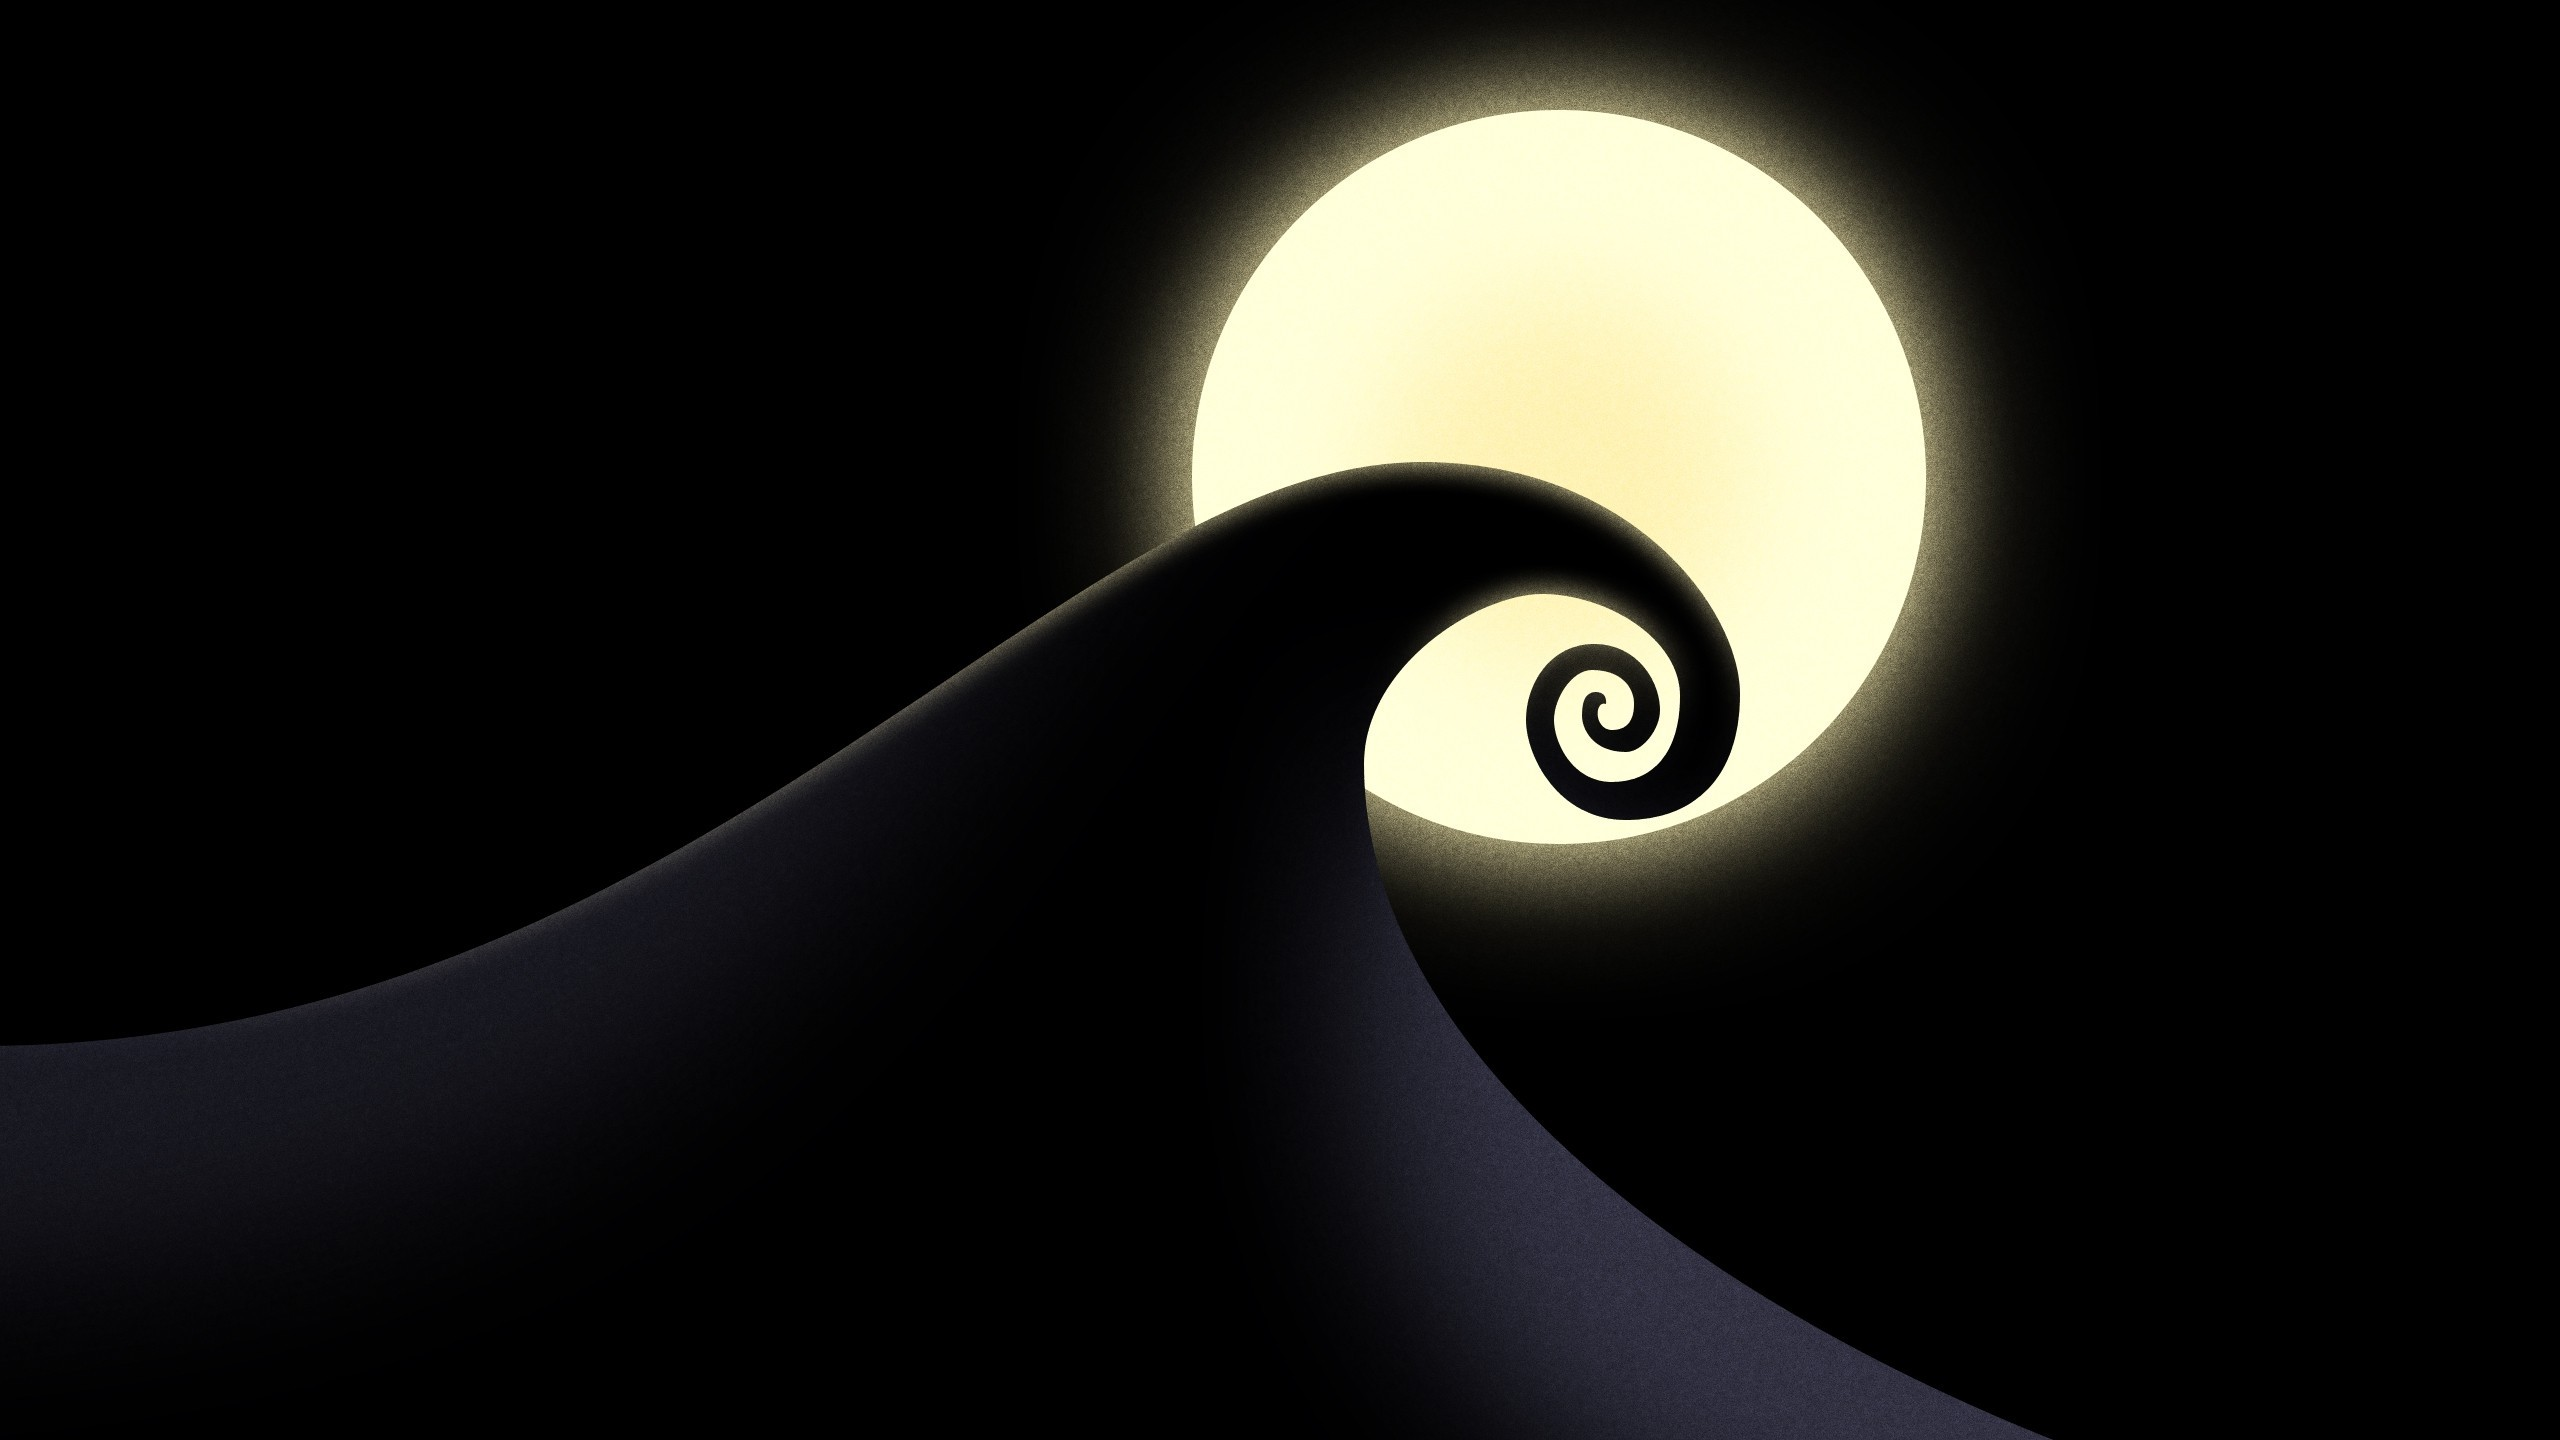 Download The Nightmare Before Christmas wallpaper 2560x1440